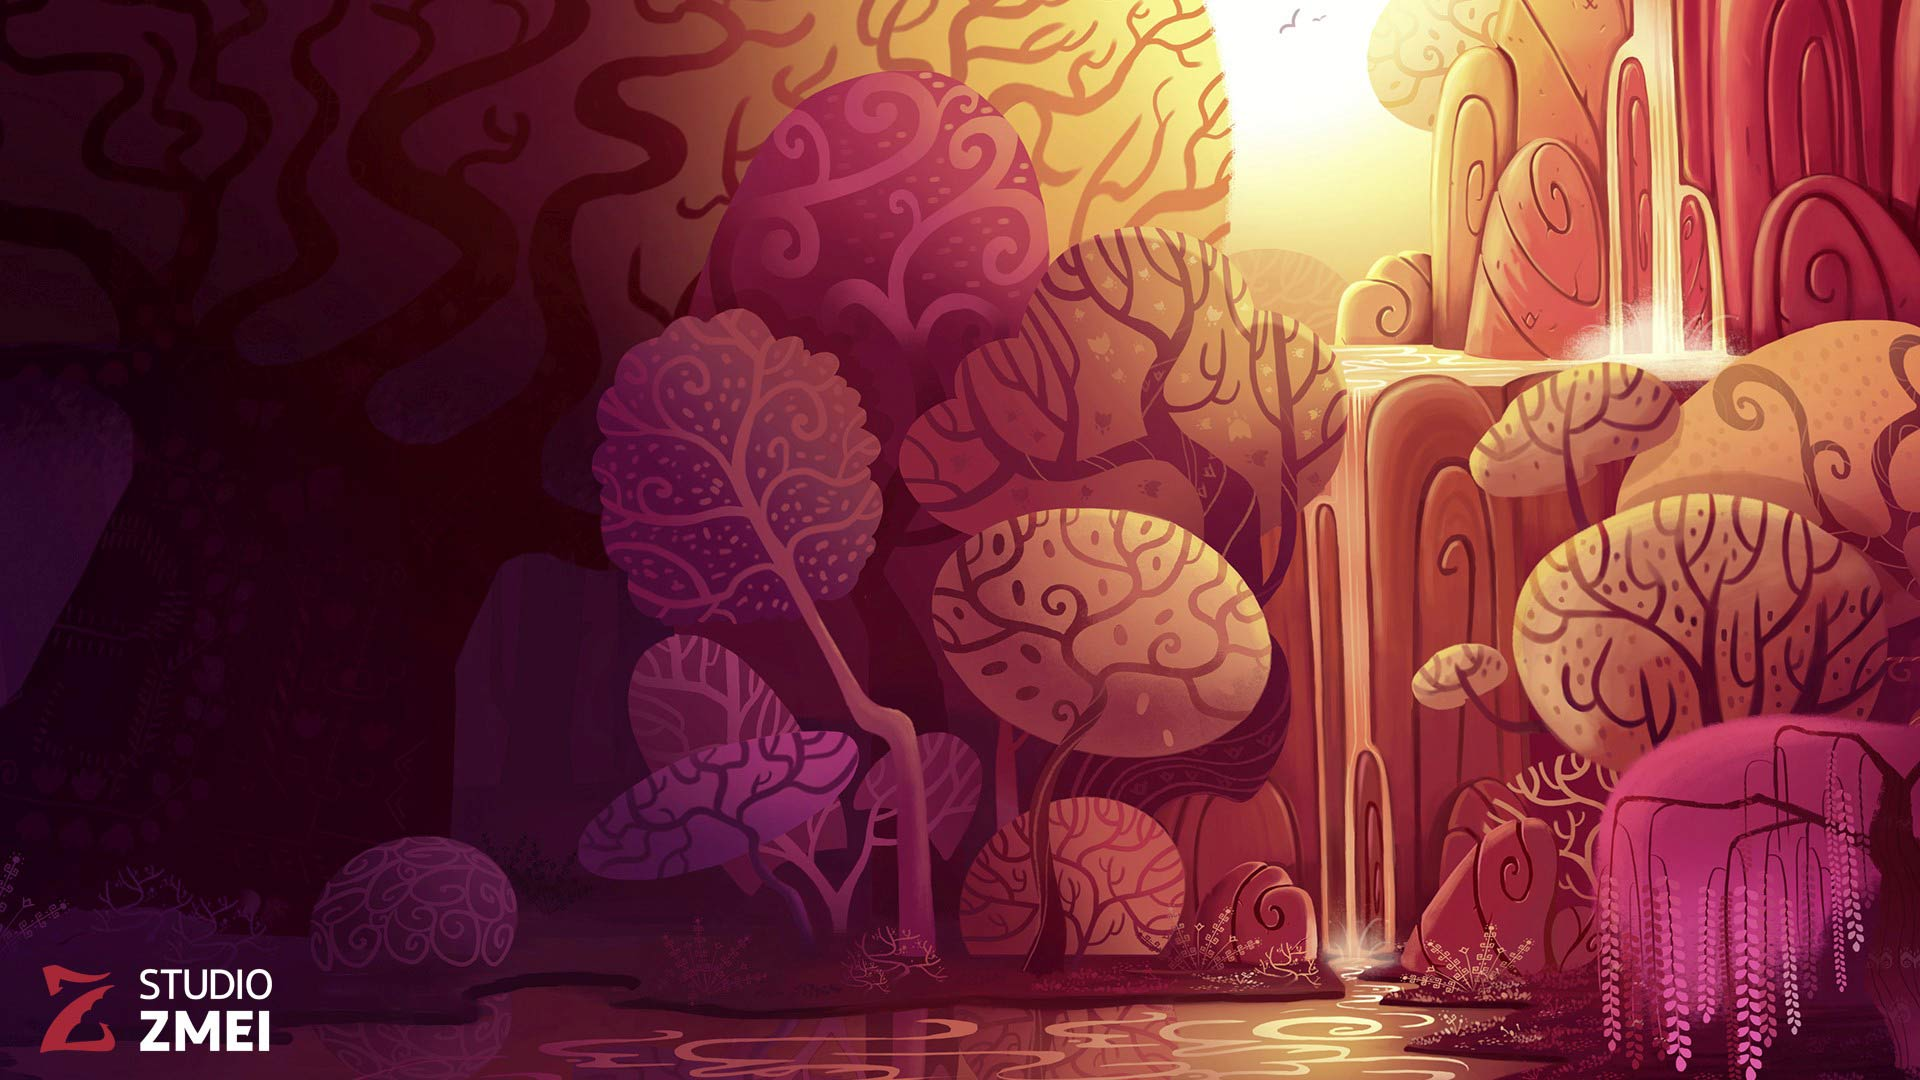 Background Design 10 - The Golden Apple